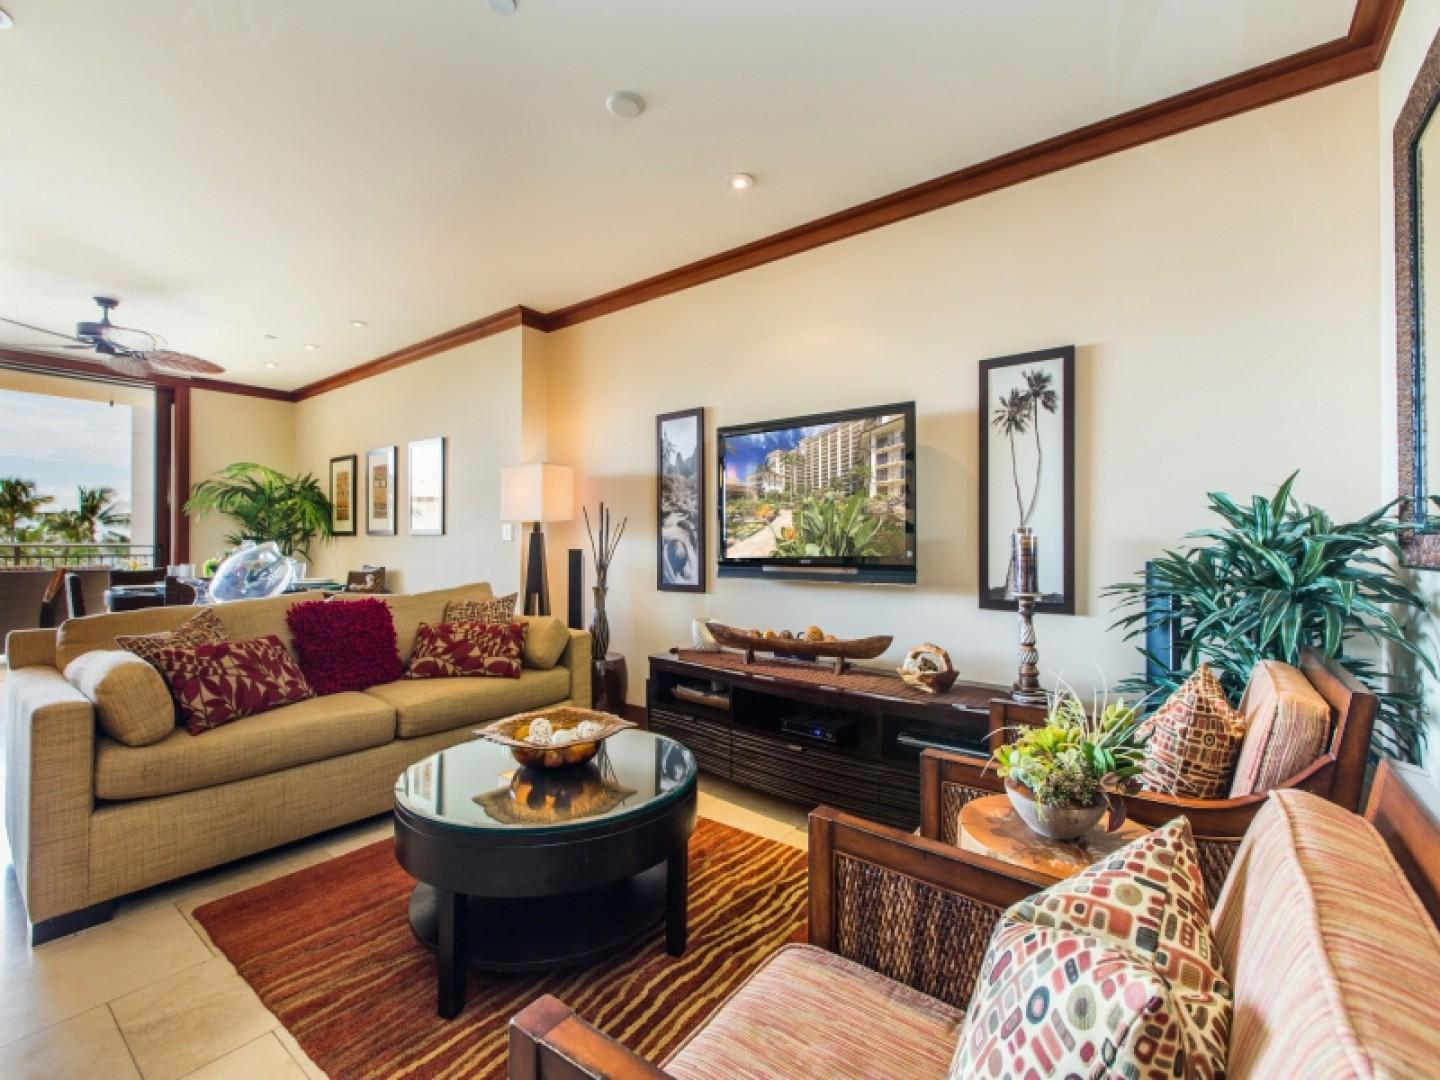 Beautifully decorated living room with flat screen TV and plenty of room to entertain